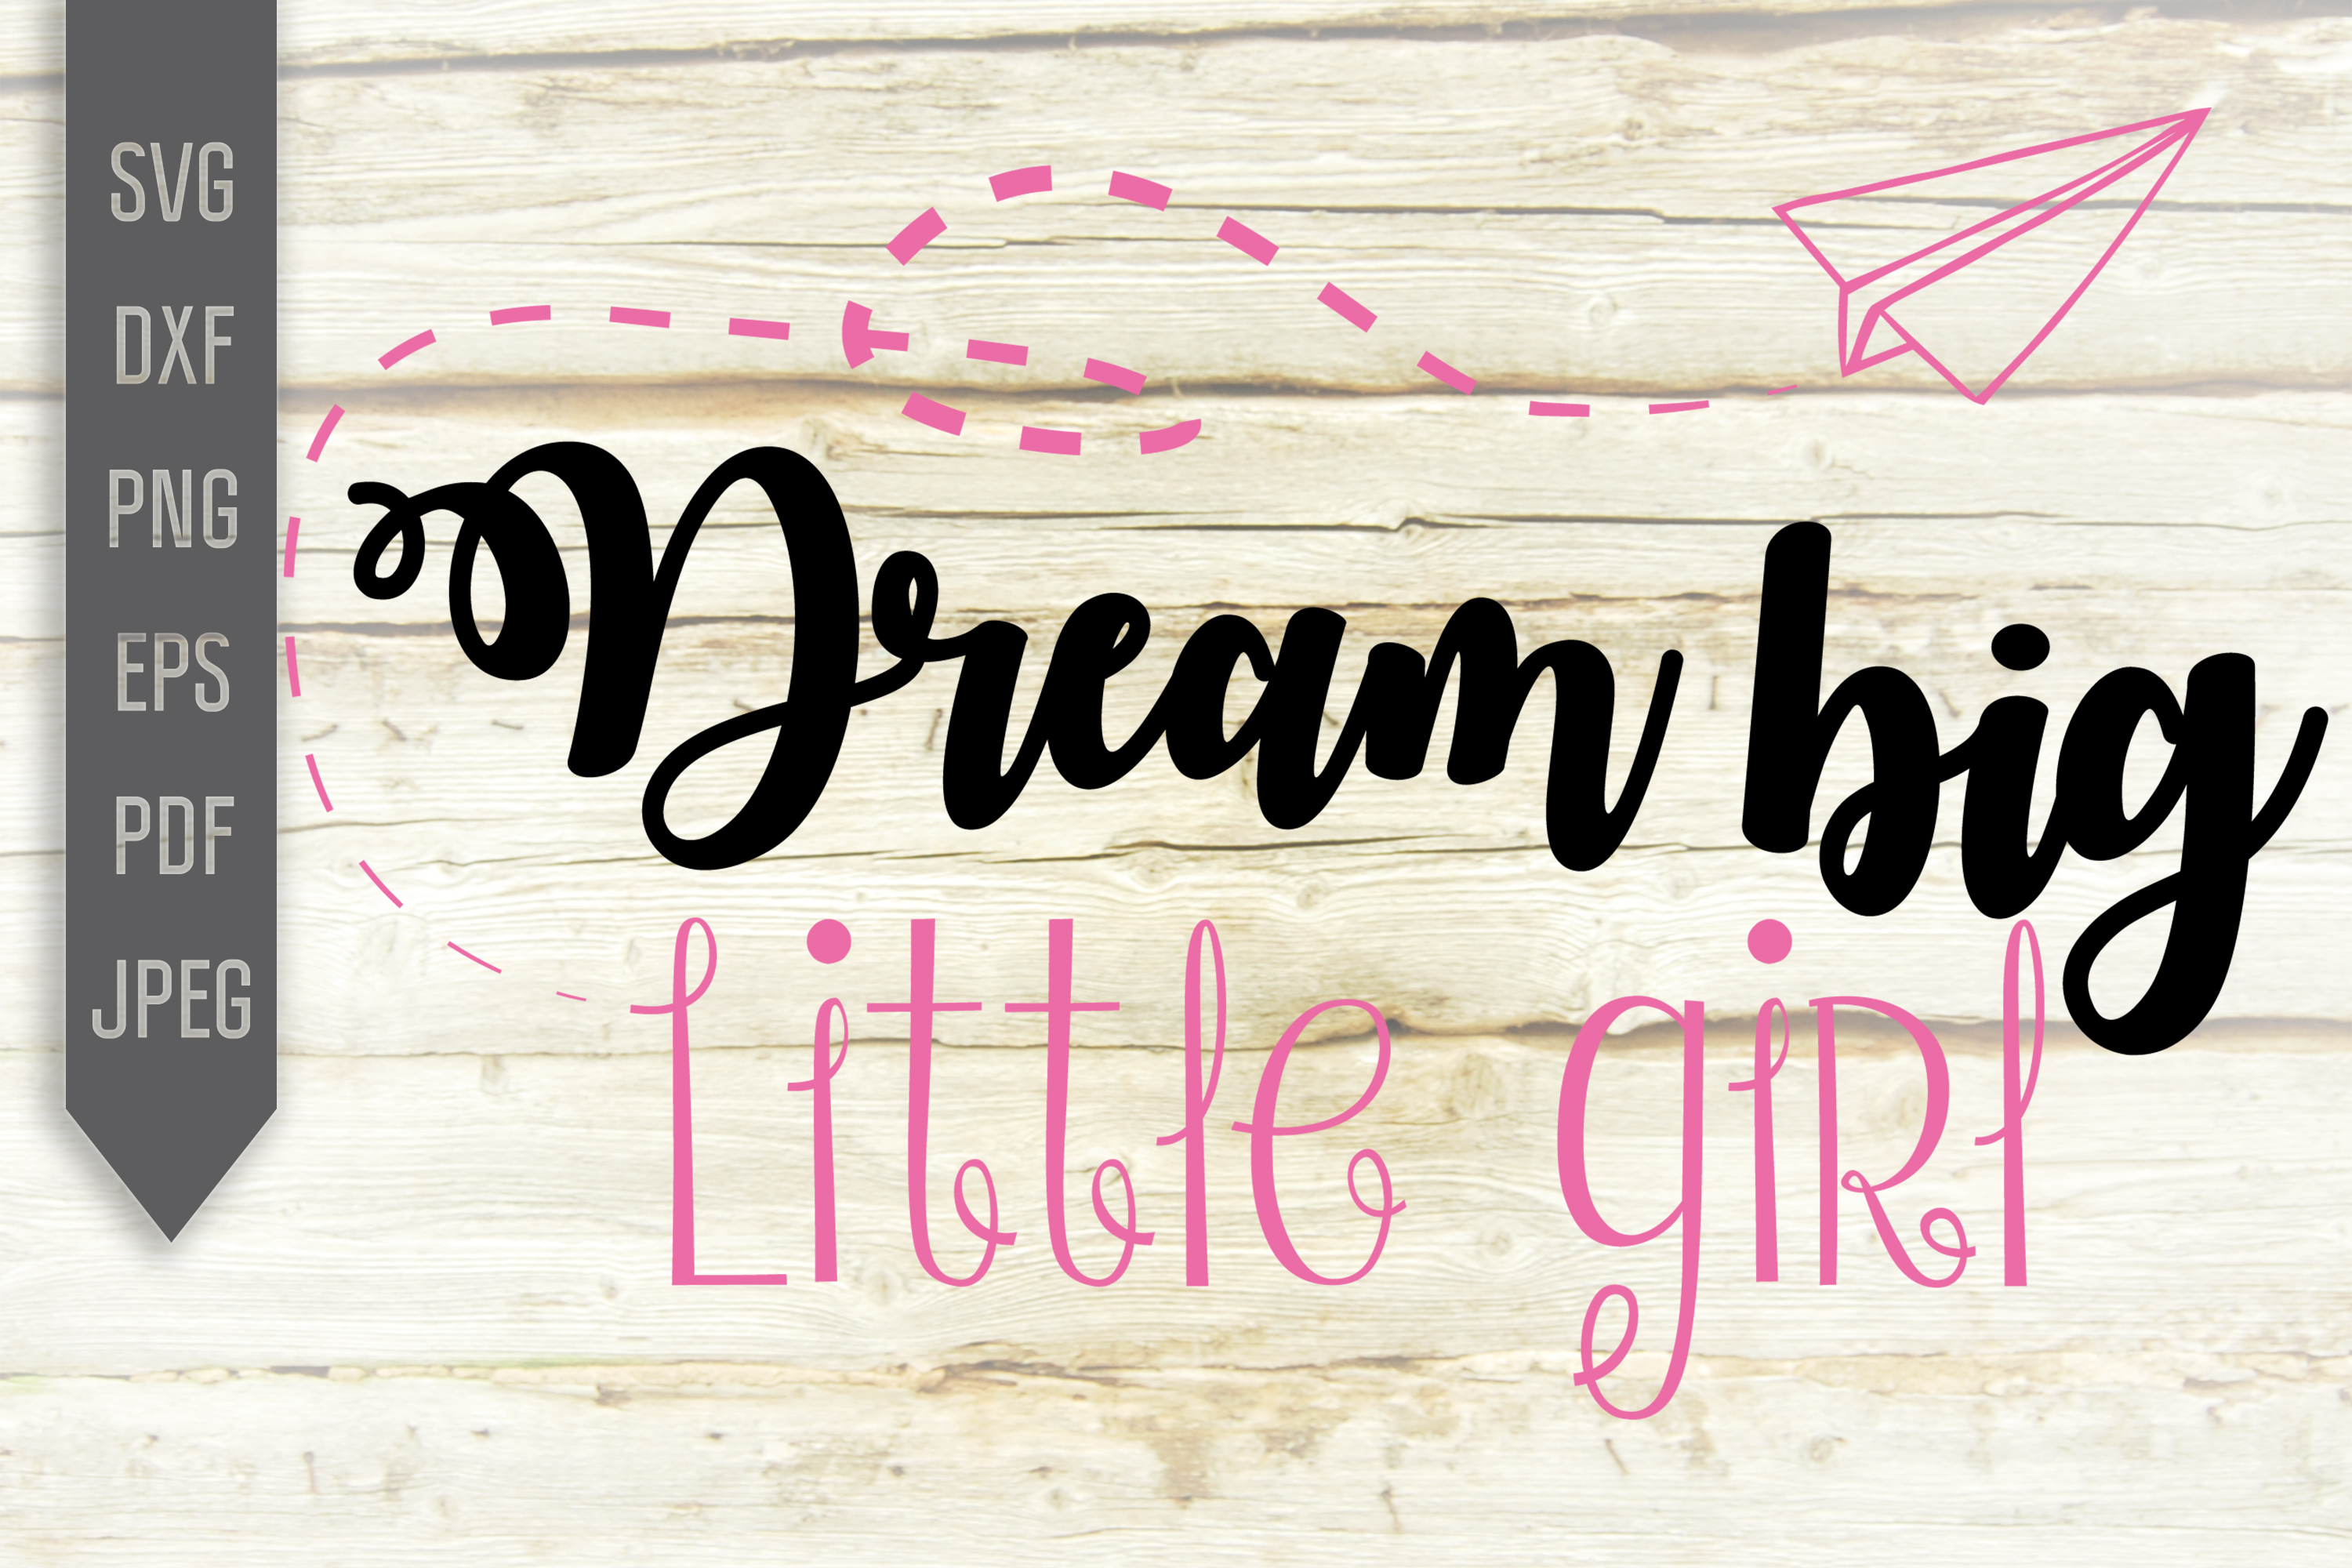 Download Free Dream Big Little Girl Svg Paper Plane Graphic By Svglaboratory for Cricut Explore, Silhouette and other cutting machines.